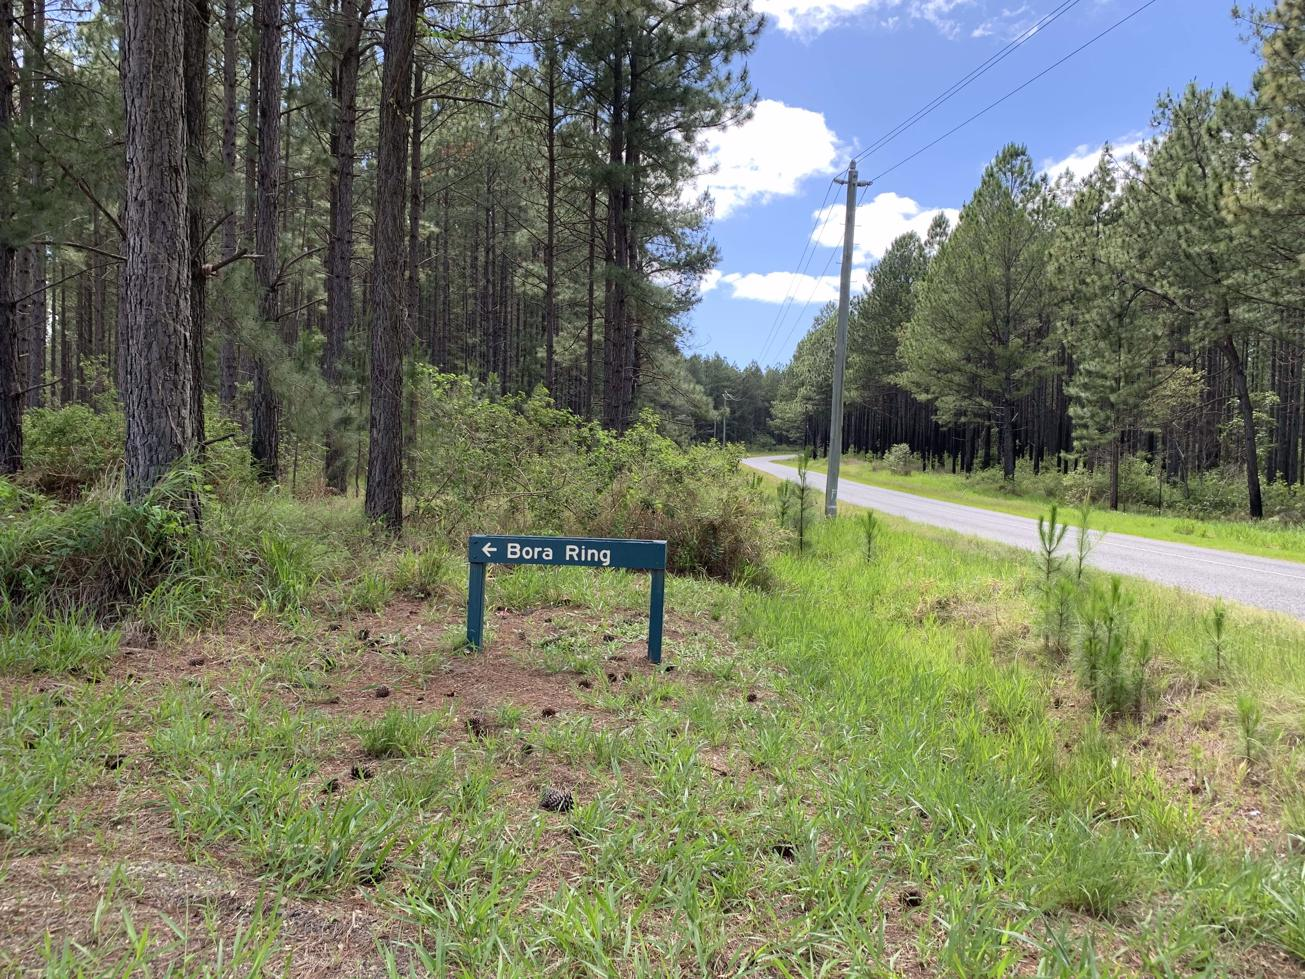 Trail Image for Beerwah State Forest: Bora Ring